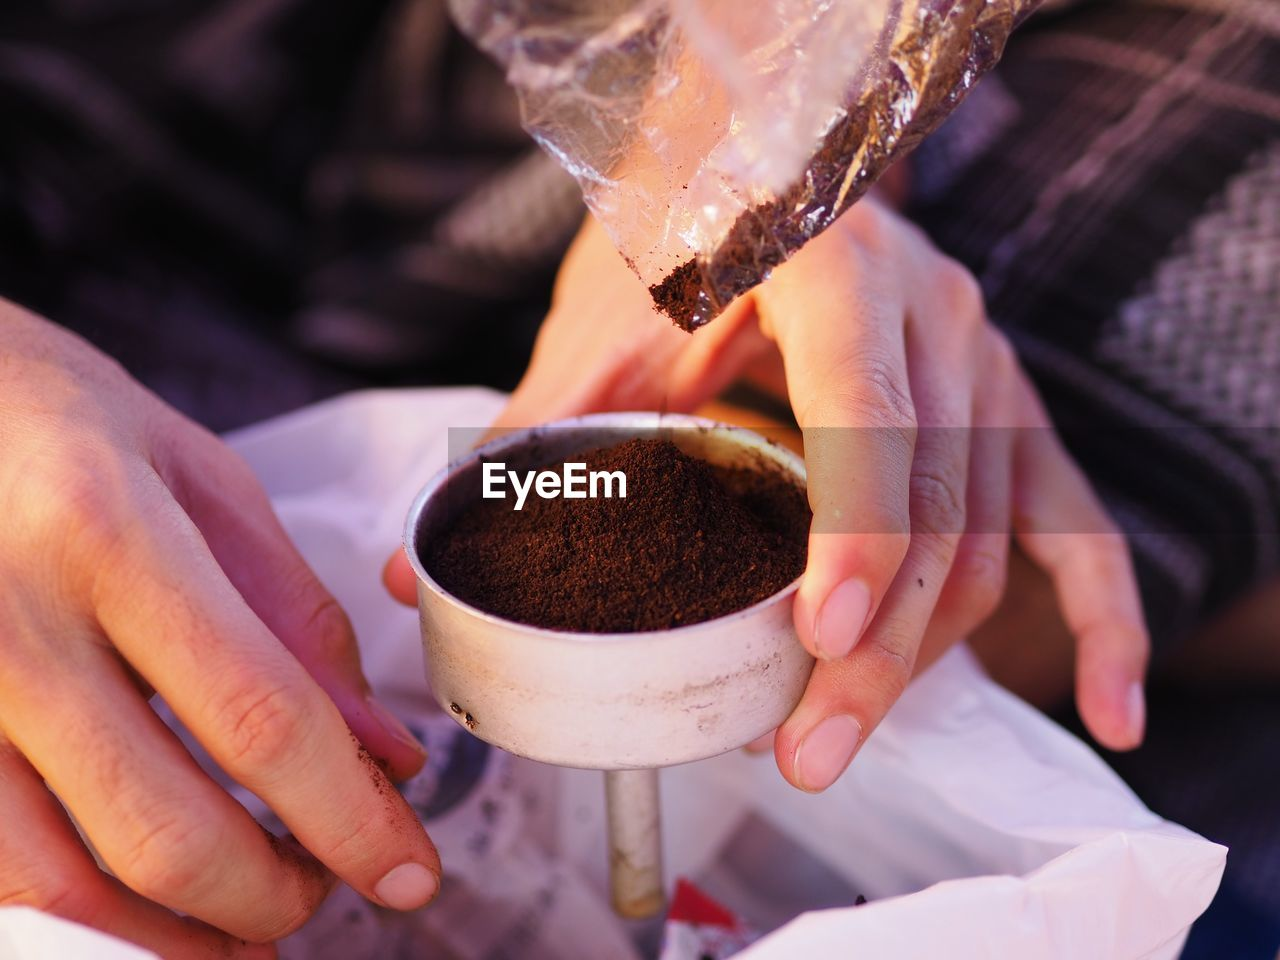 human hand, hand, food and drink, holding, real people, one person, human body part, freshness, lifestyles, focus on foreground, cup, midsection, drink, coffee, refreshment, indoors, coffee cup, mug, coffee - drink, finger, human limb